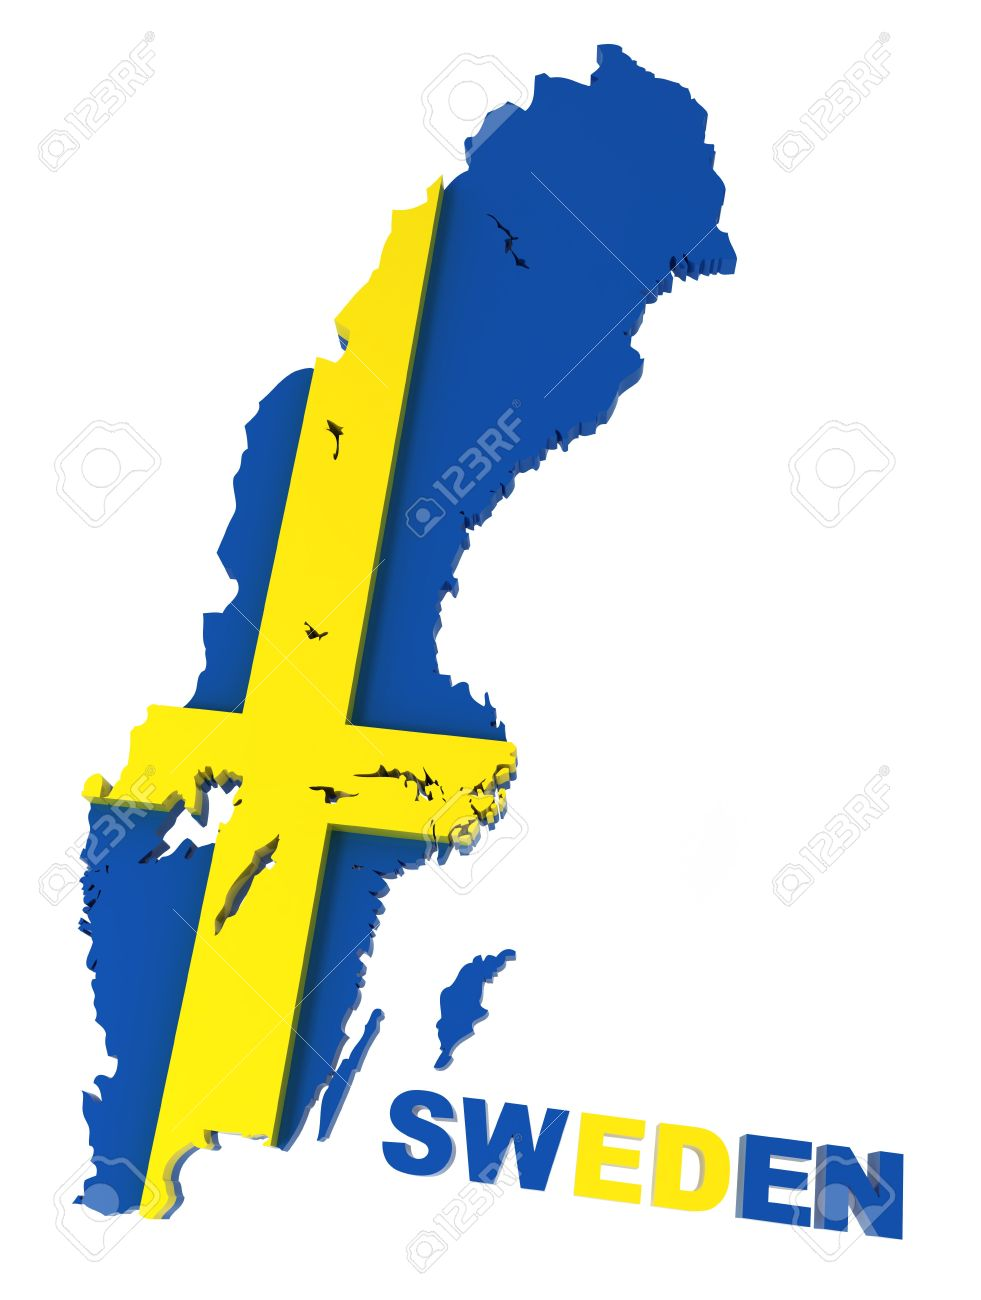 Sweden Map With Flag Isolated On White D Illustration Stock - Sweden map 3d